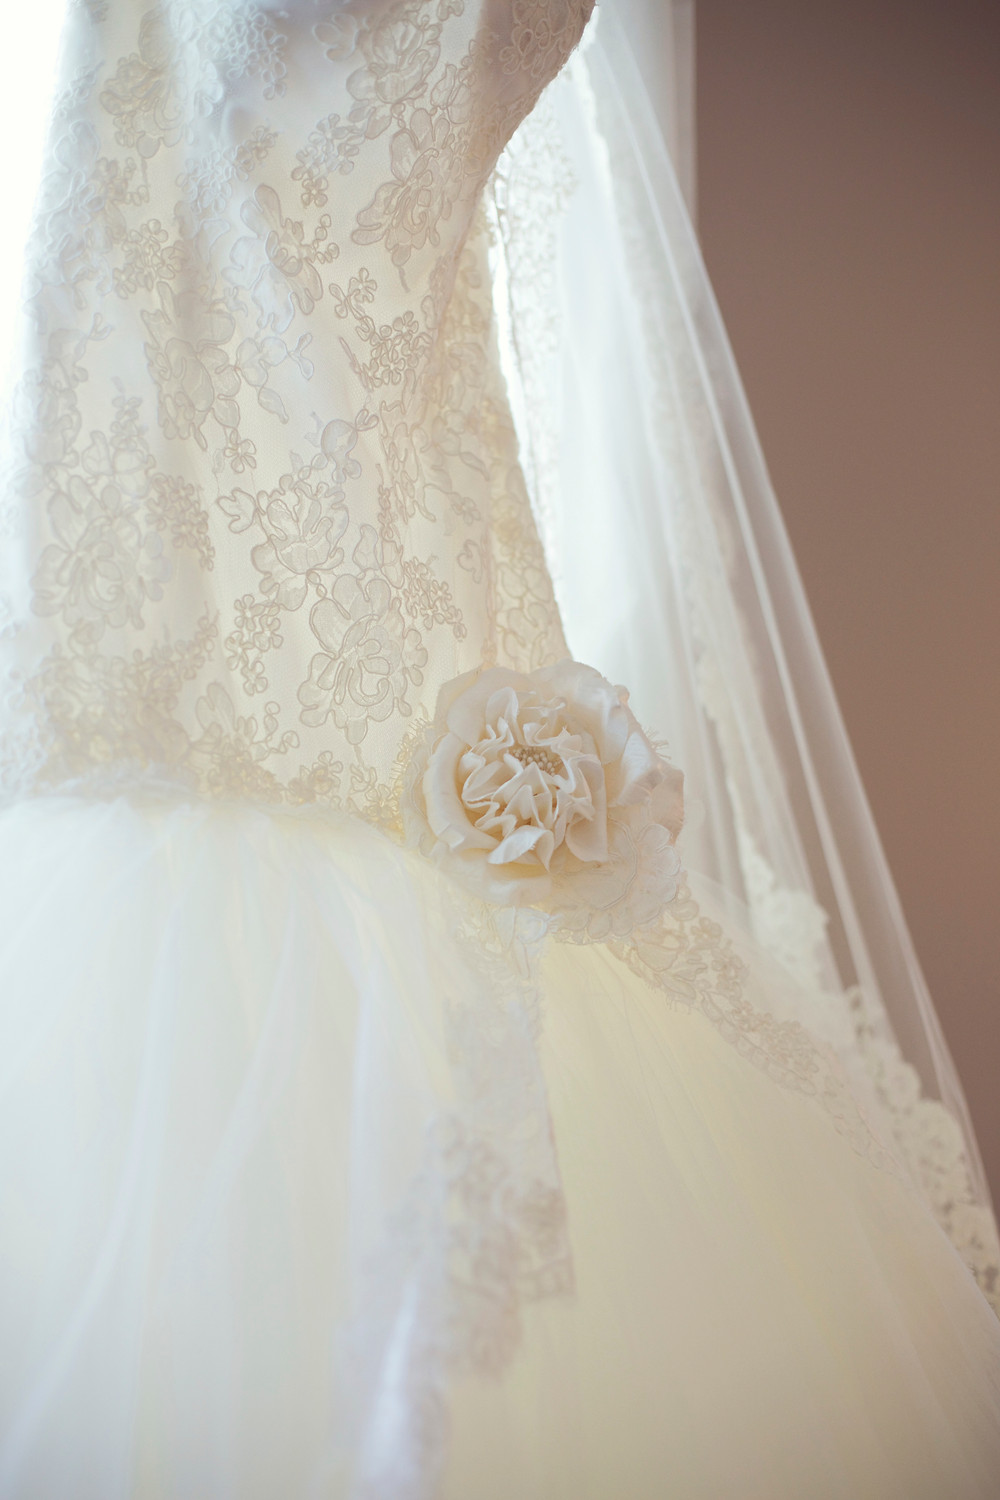 A white Lazaro wedding dress off lace and tulle hanging from a window on the wedding day.